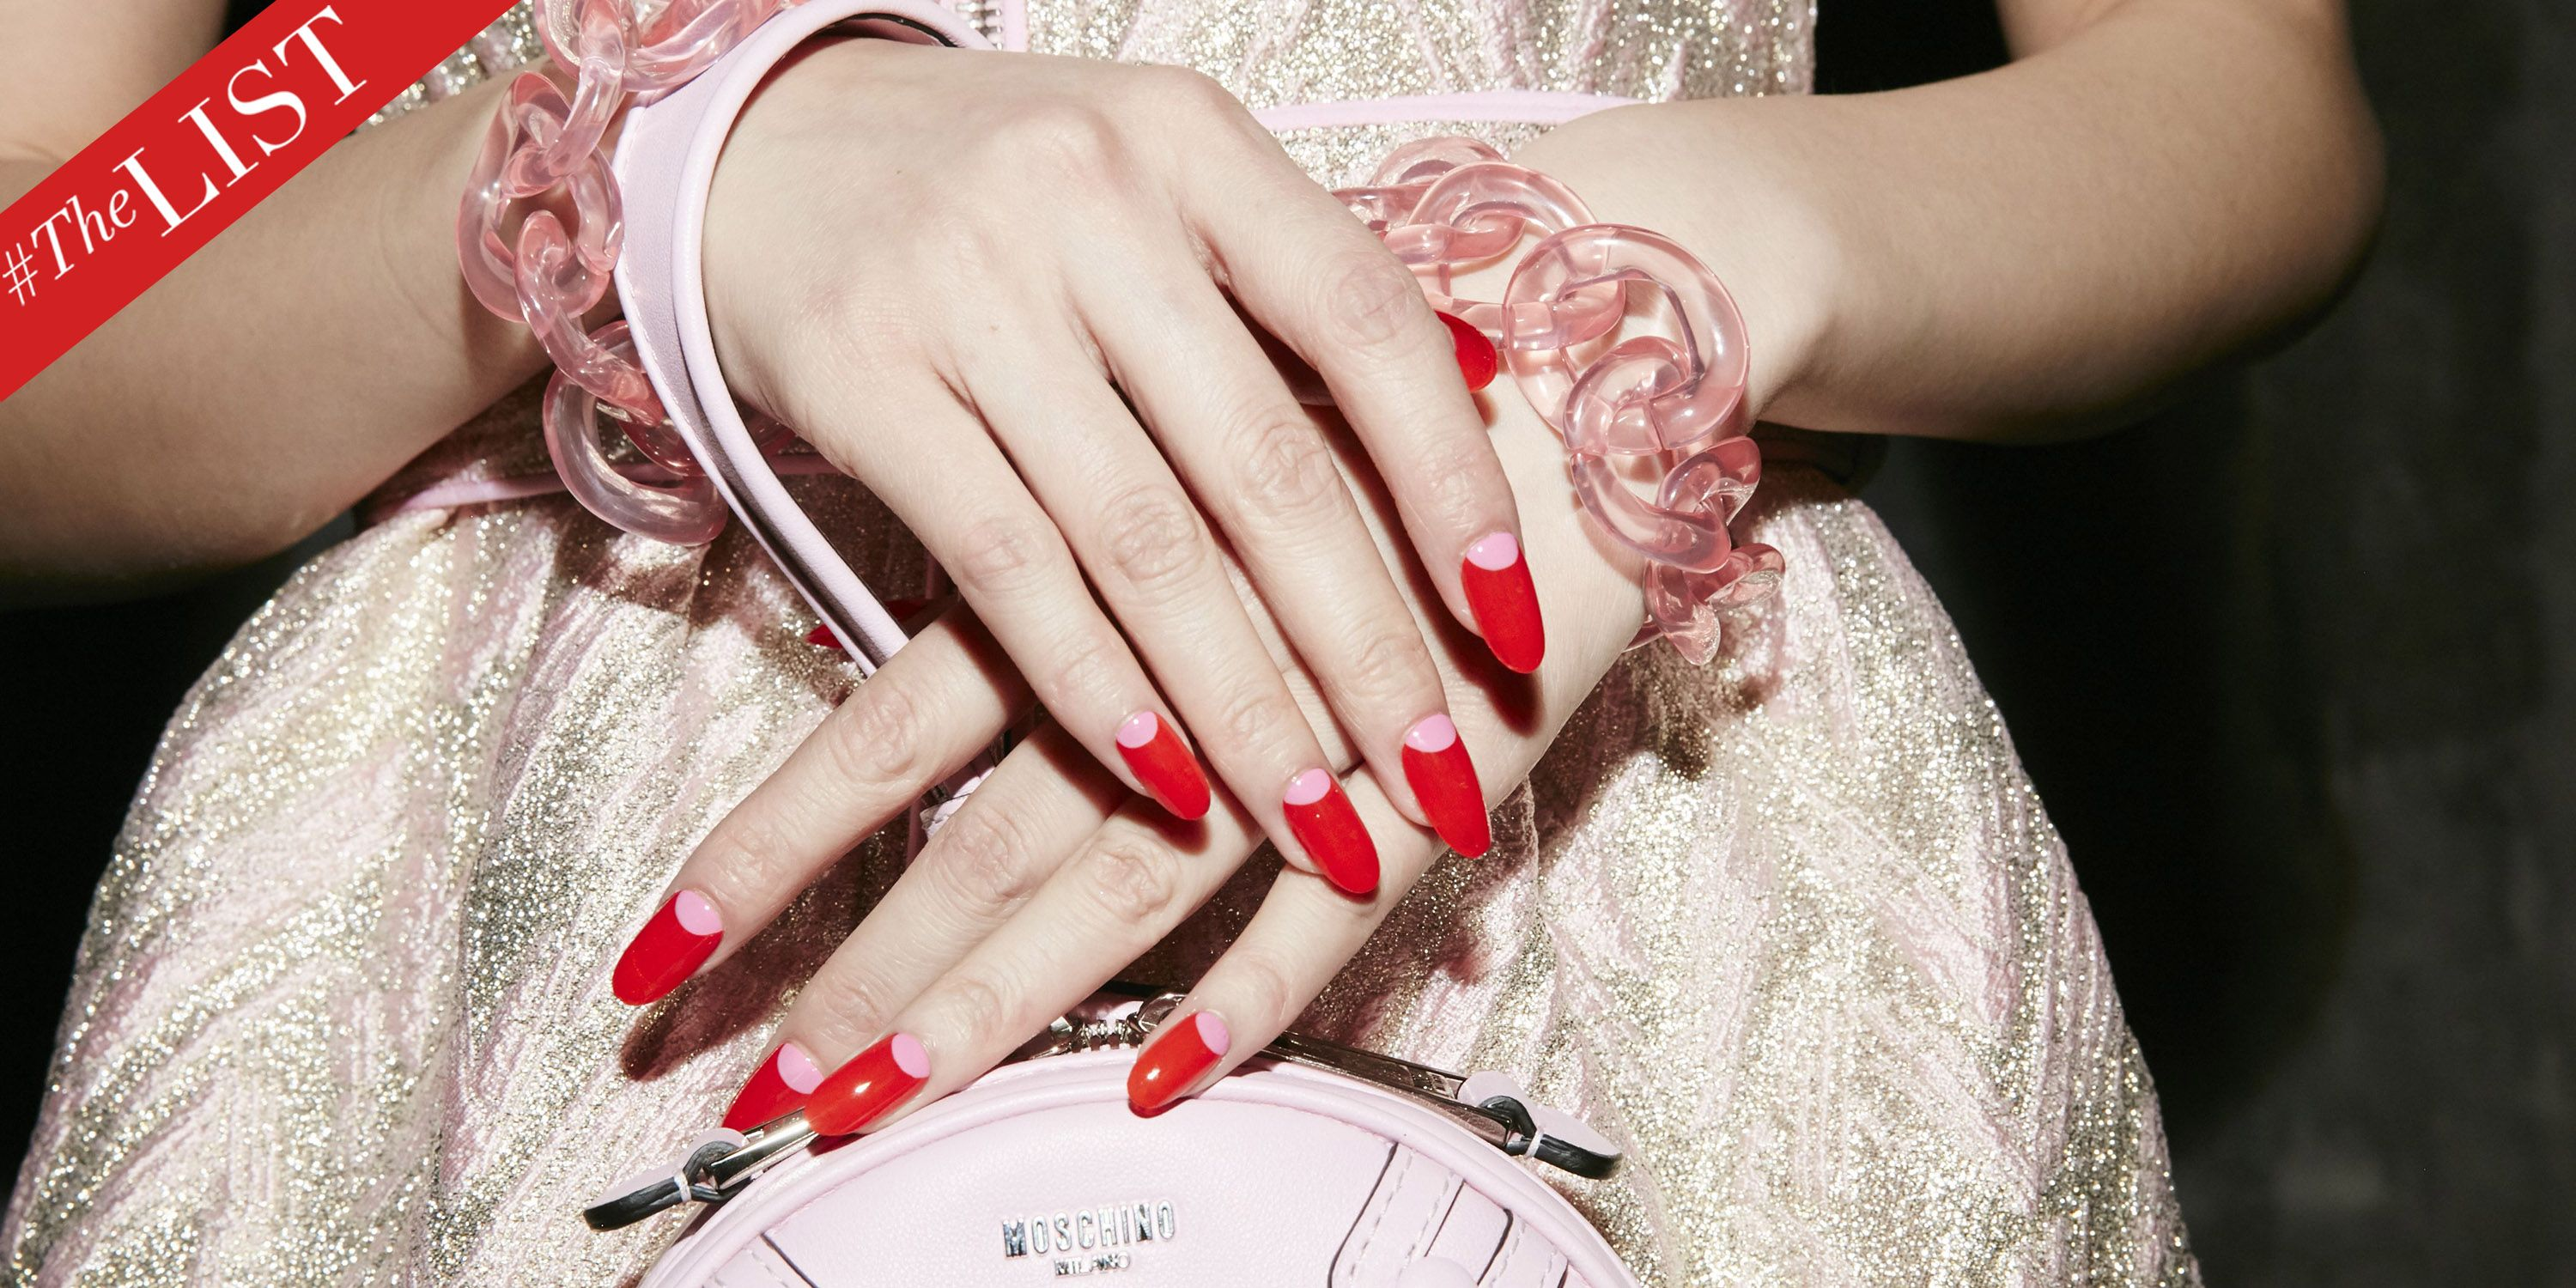 aed08bd60b922 Fall 2018 Nails Trends - Nail Art And Nail Trends For Fall Winter 2018